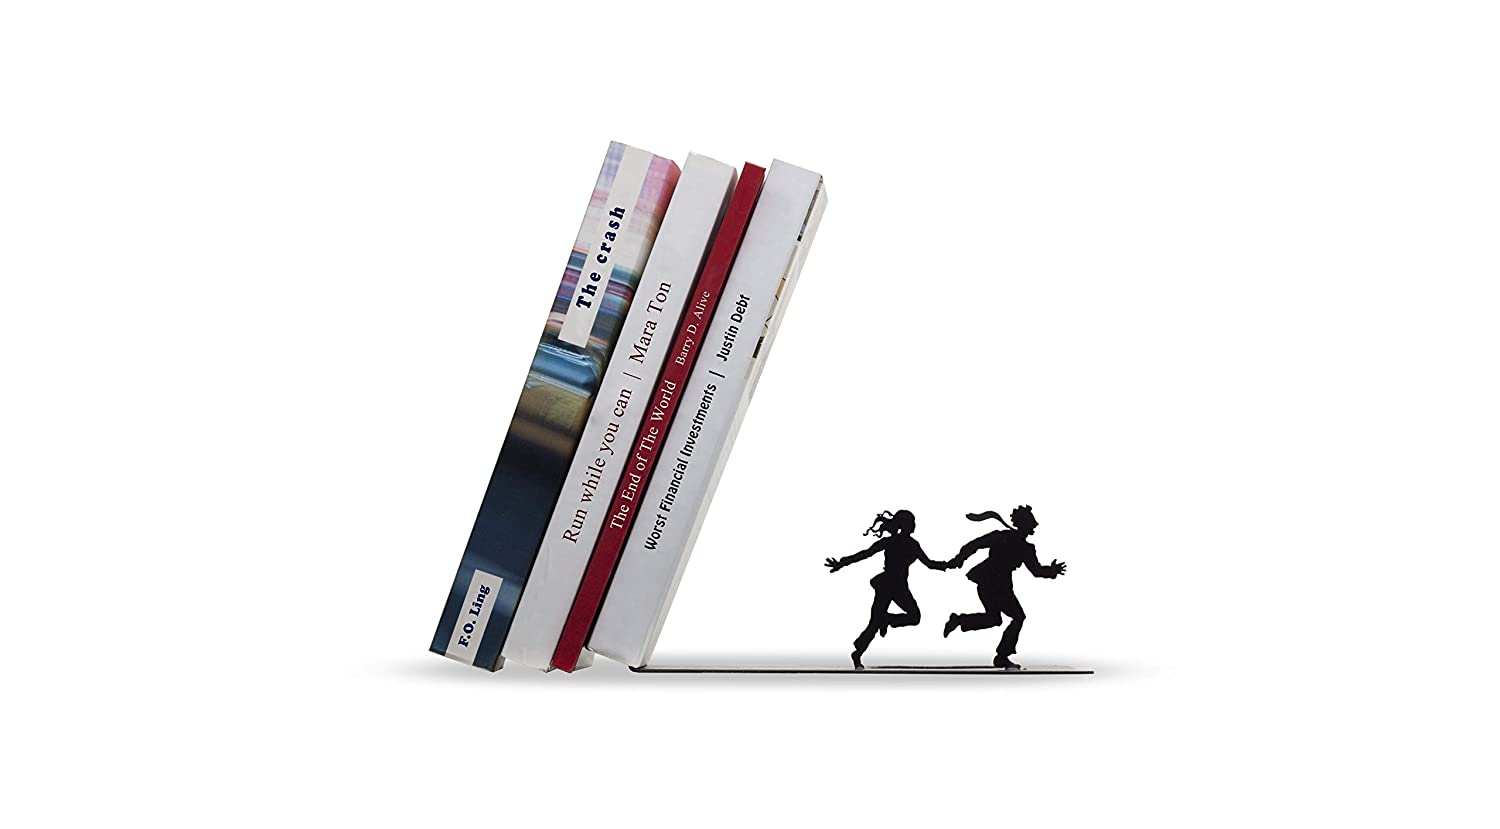 ARTORI Design Runaway Bookend - Falling Books on a Running Couple - Black Metal Bookend - Gifts for Couples, Romantic Gift AD105